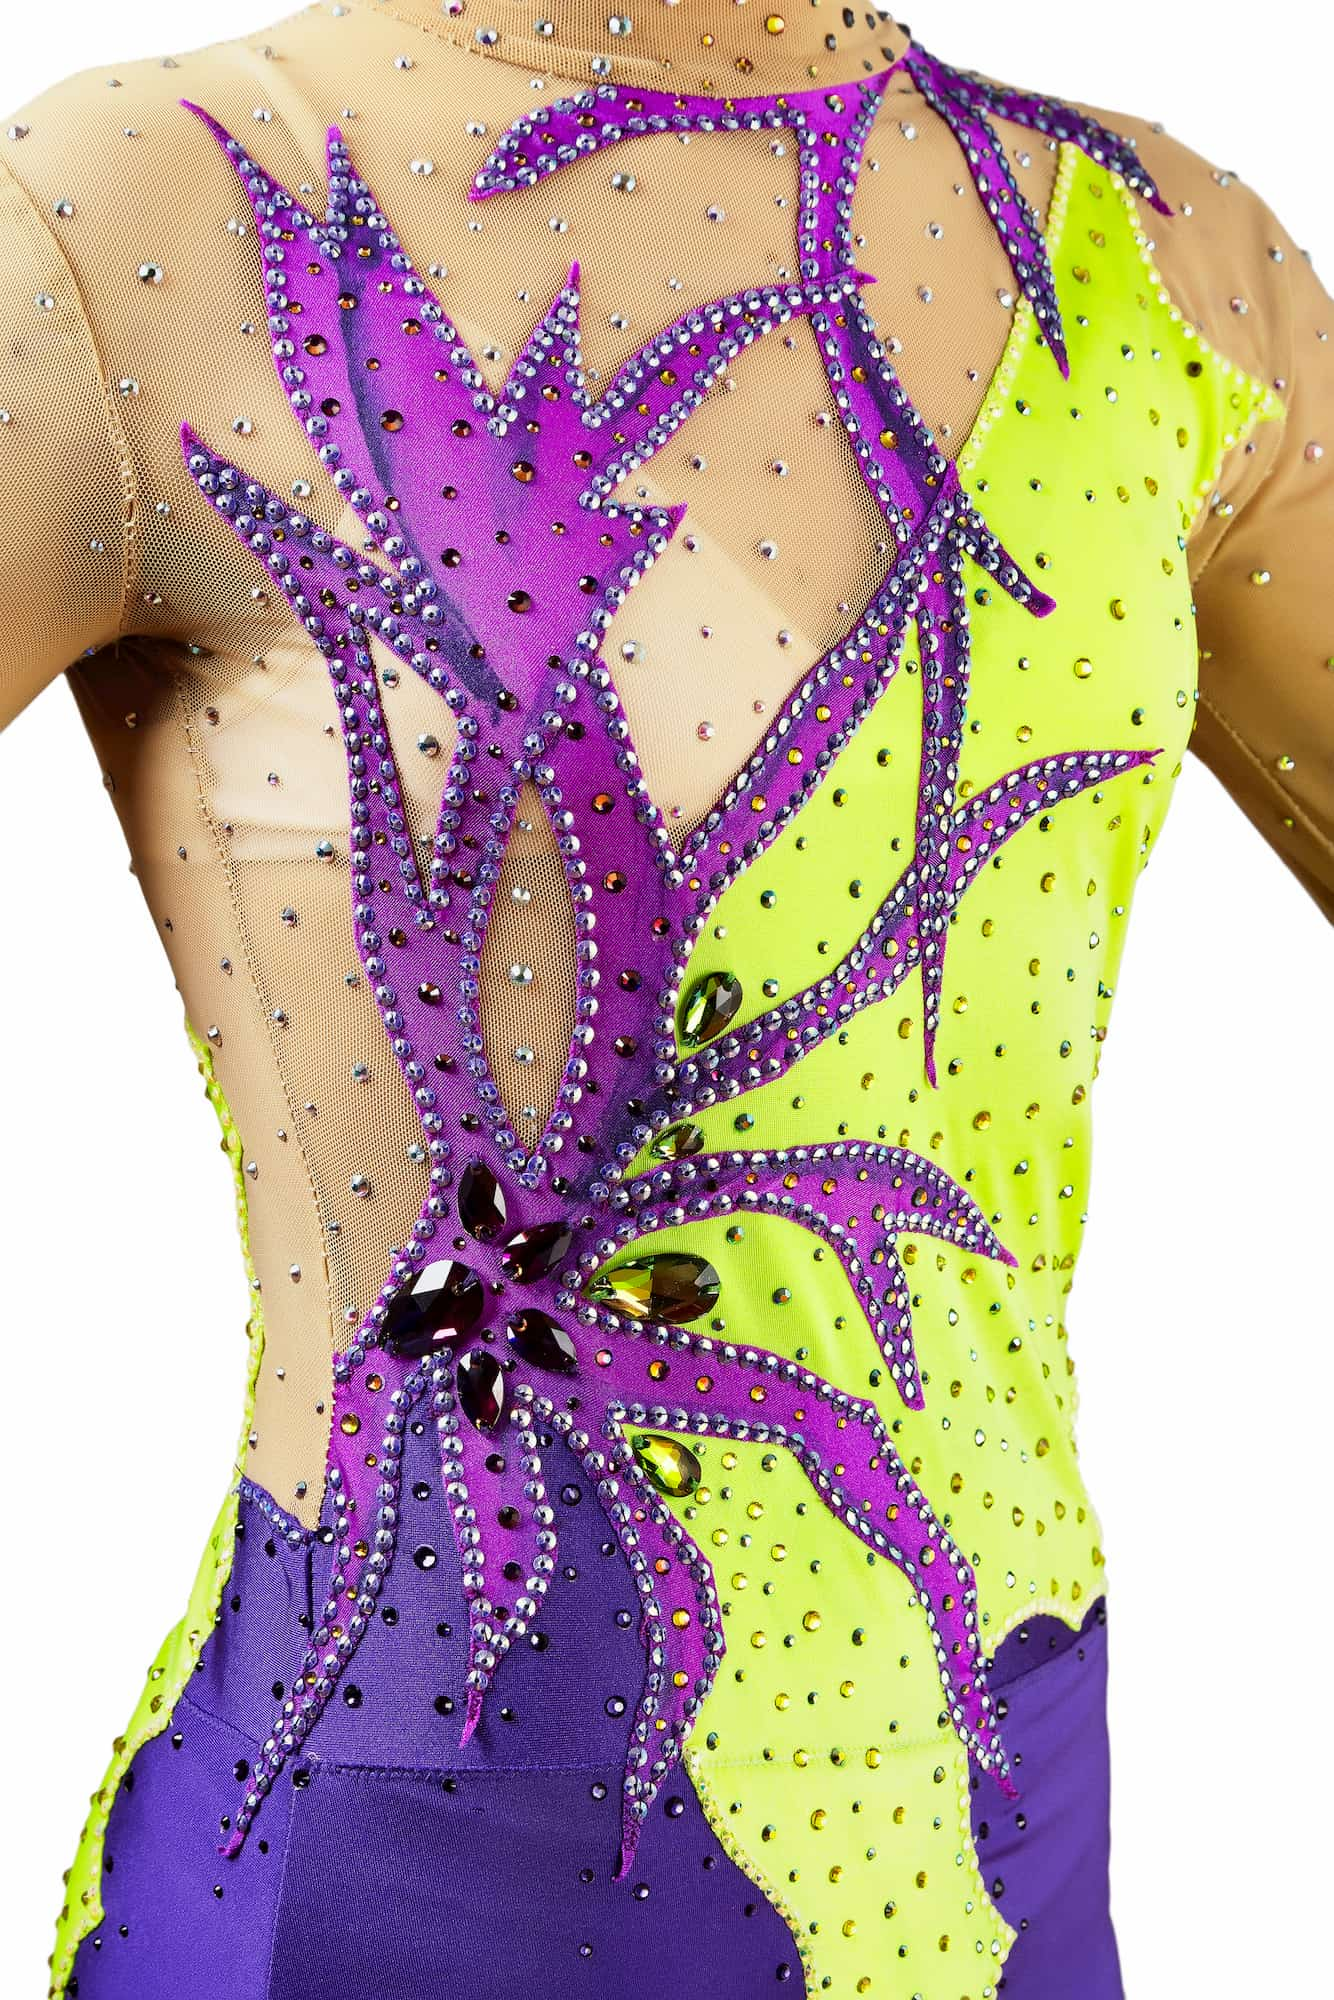 Abstract details of lemon, purple, ink rhythmic gymnastics leotard № 119 for competitions